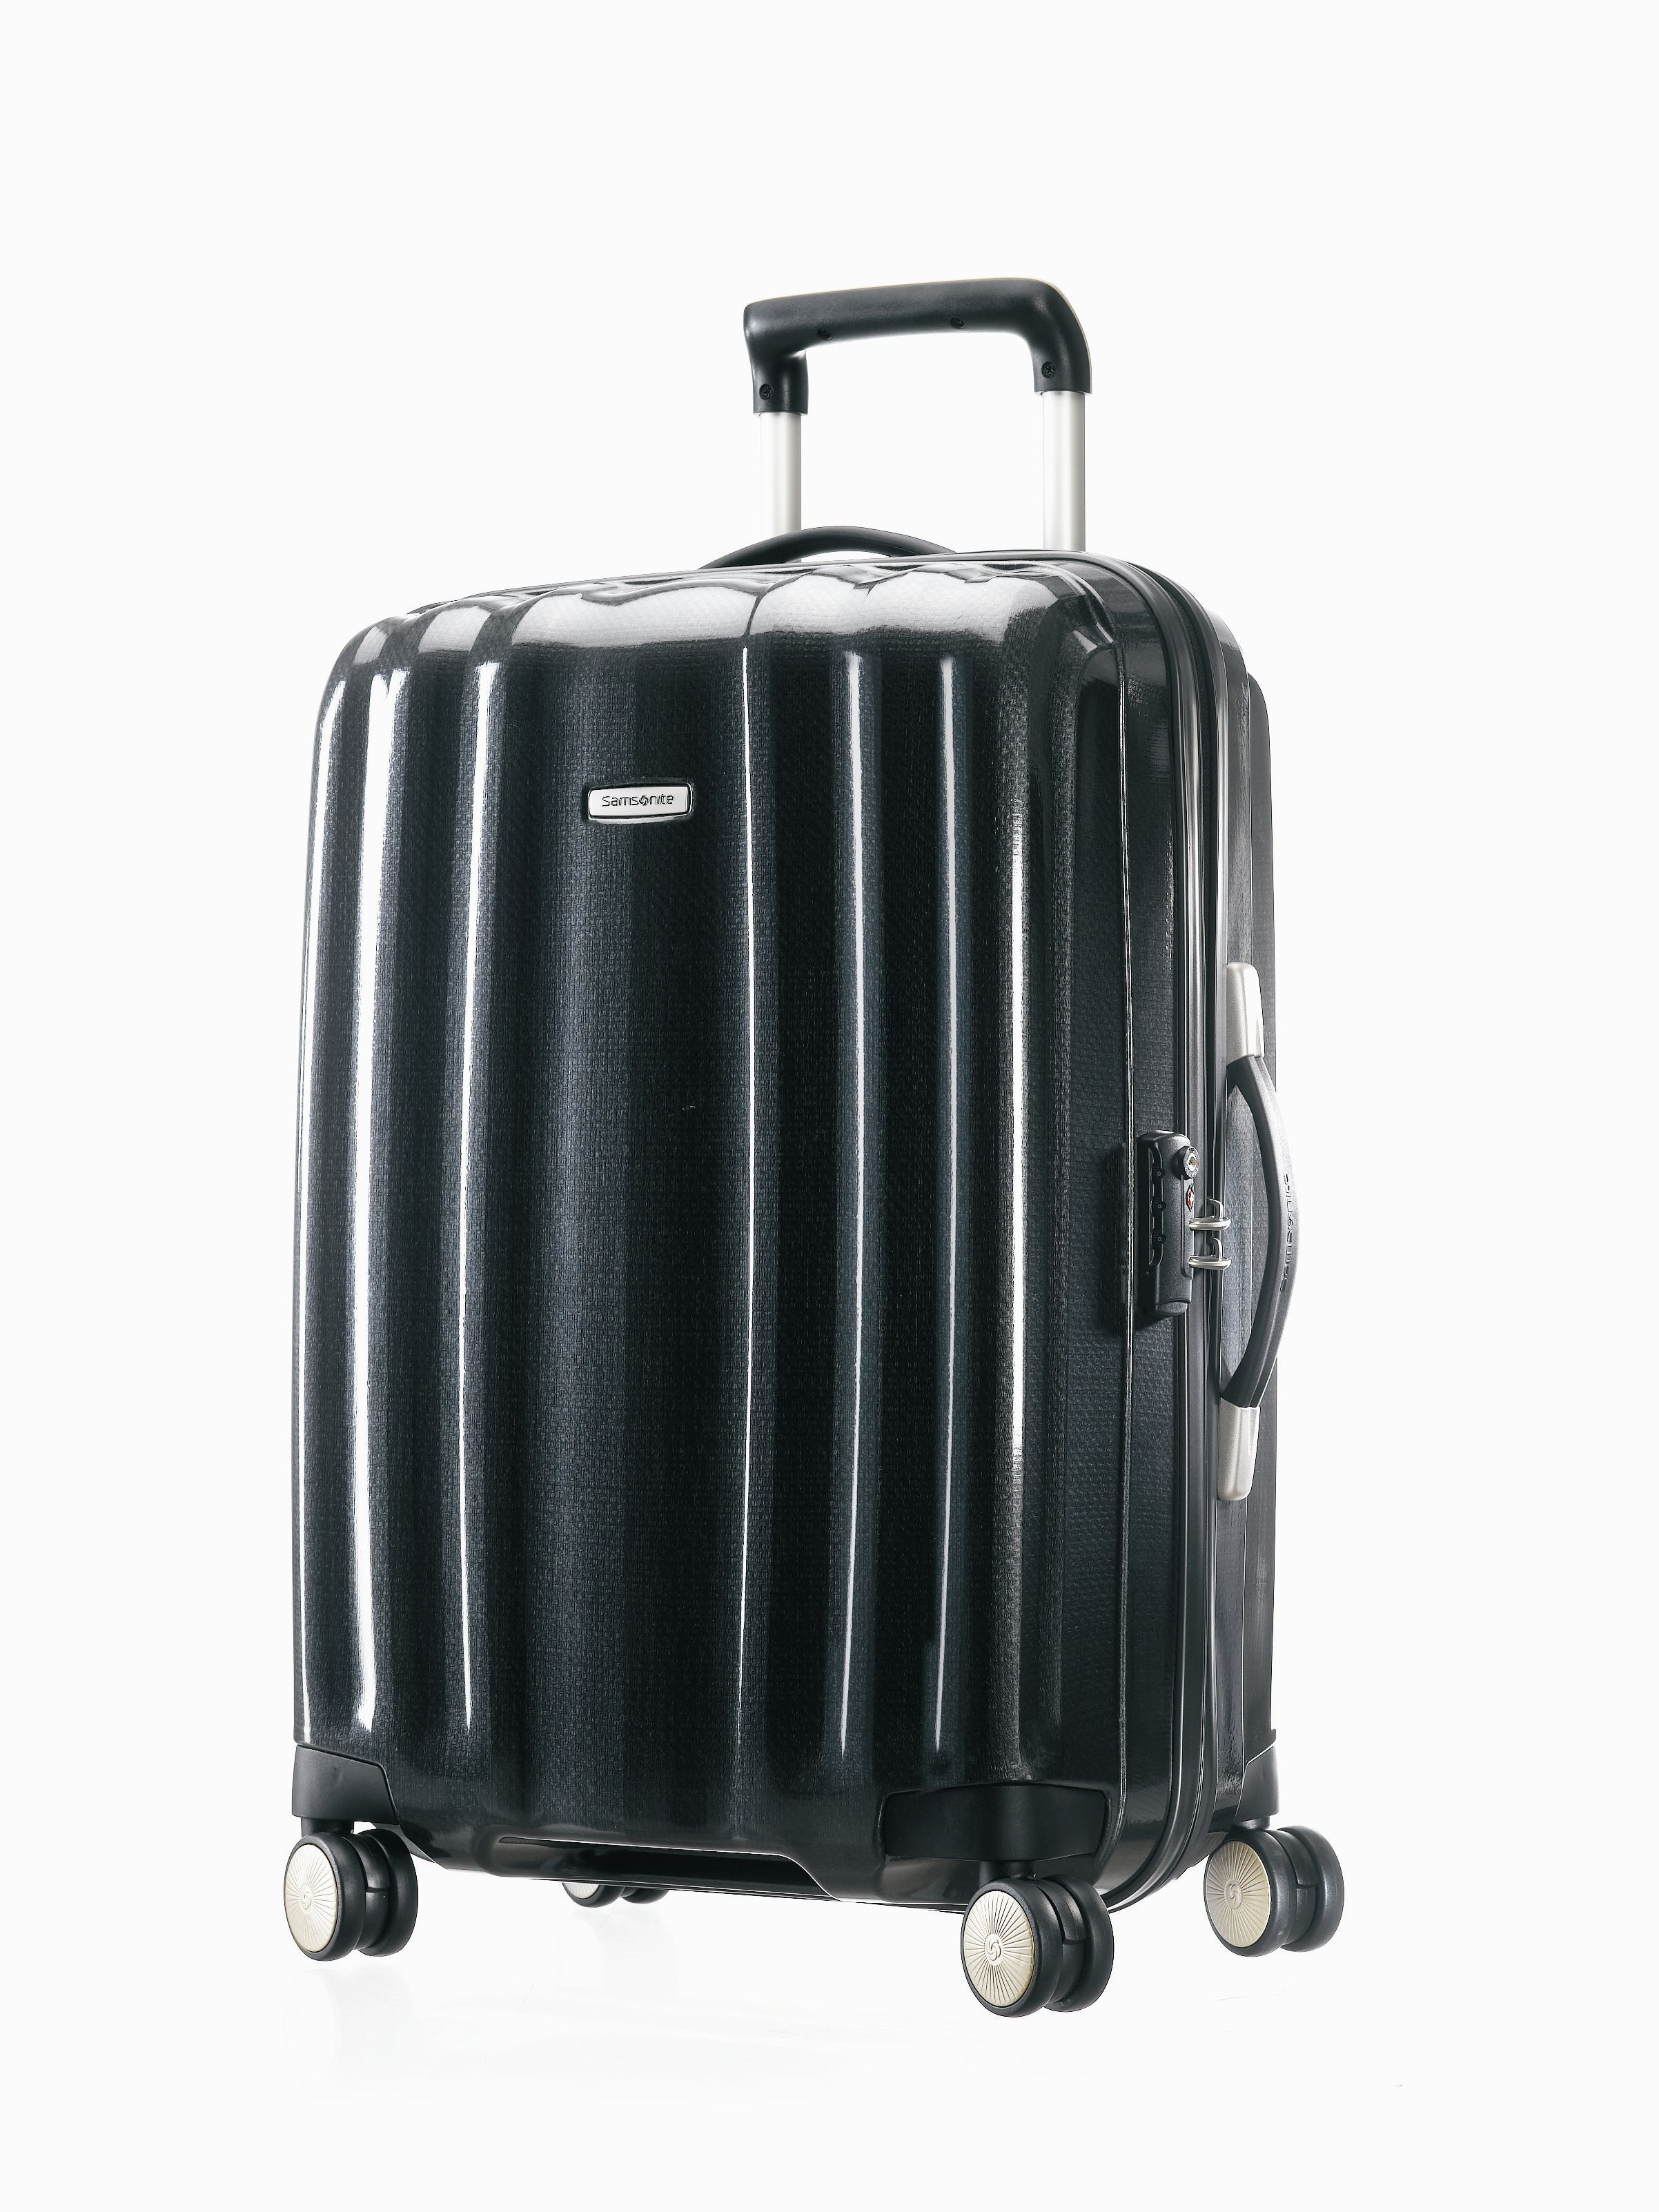 Cubelite graphite 68cm 4 wheel case